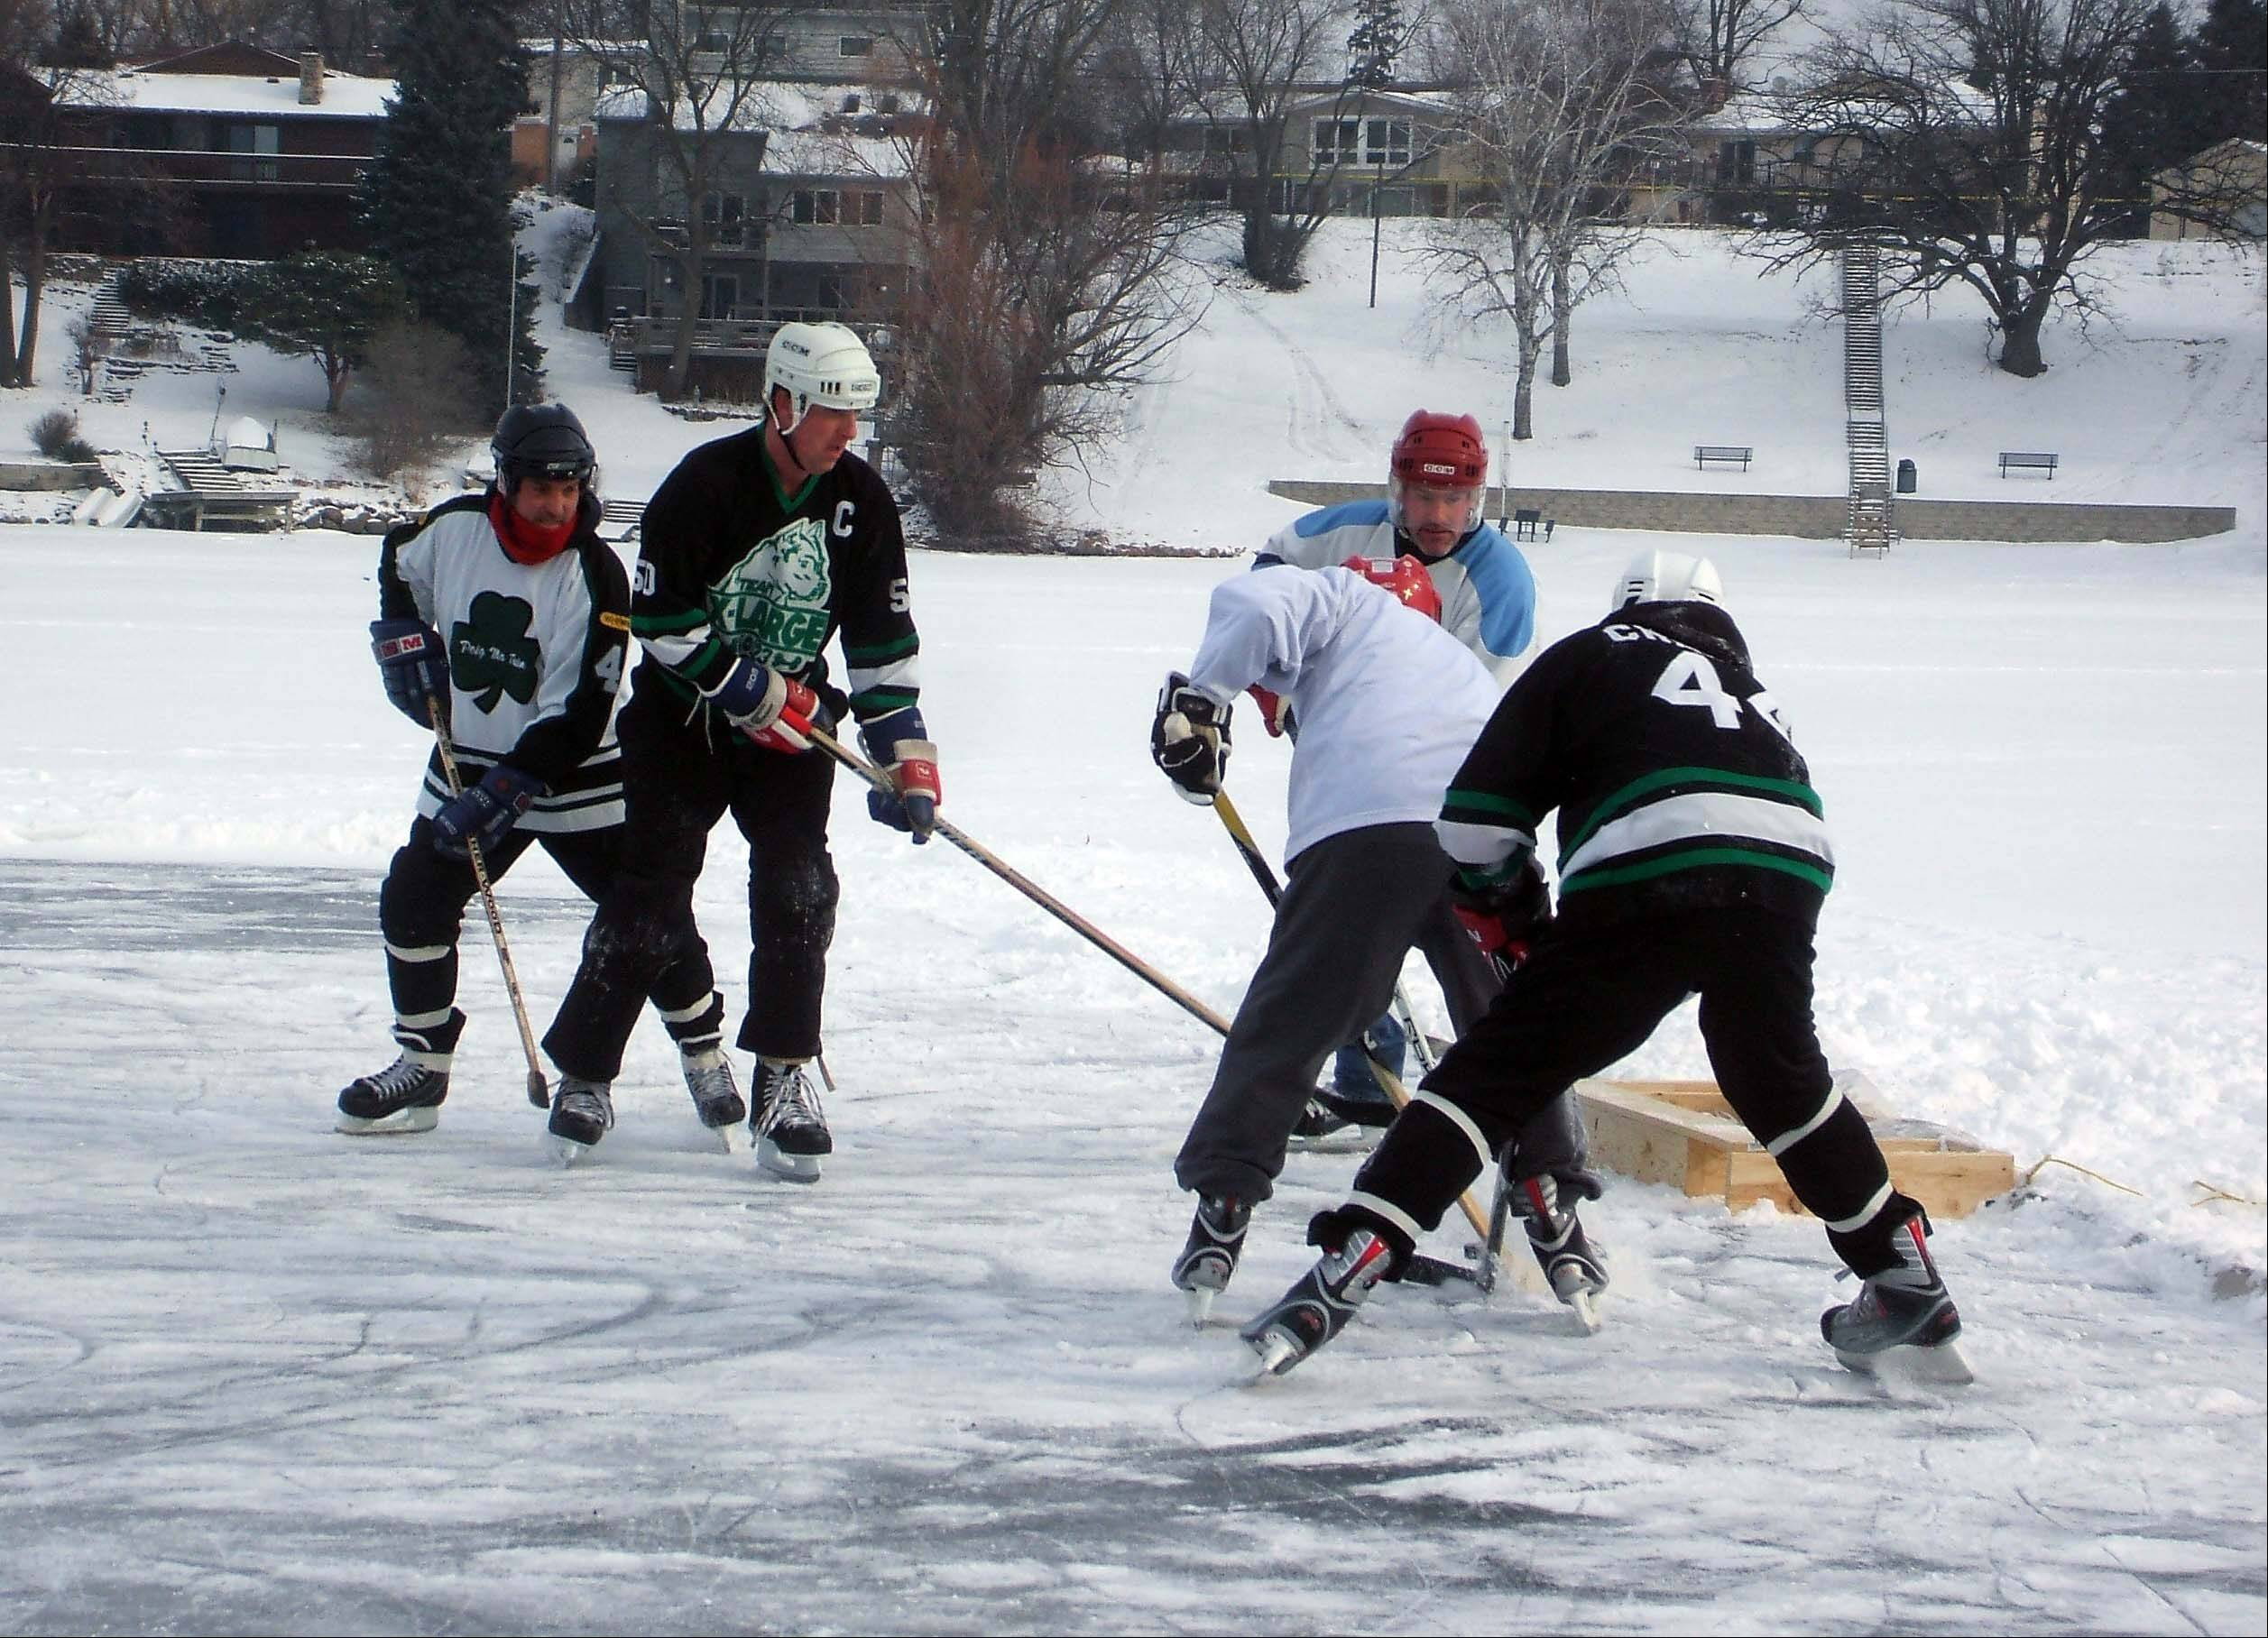 The weather was too warm the past two years, but the inaugural Lake in the Hills Outdoor Pond Hockey Tournament was a success in 2011.